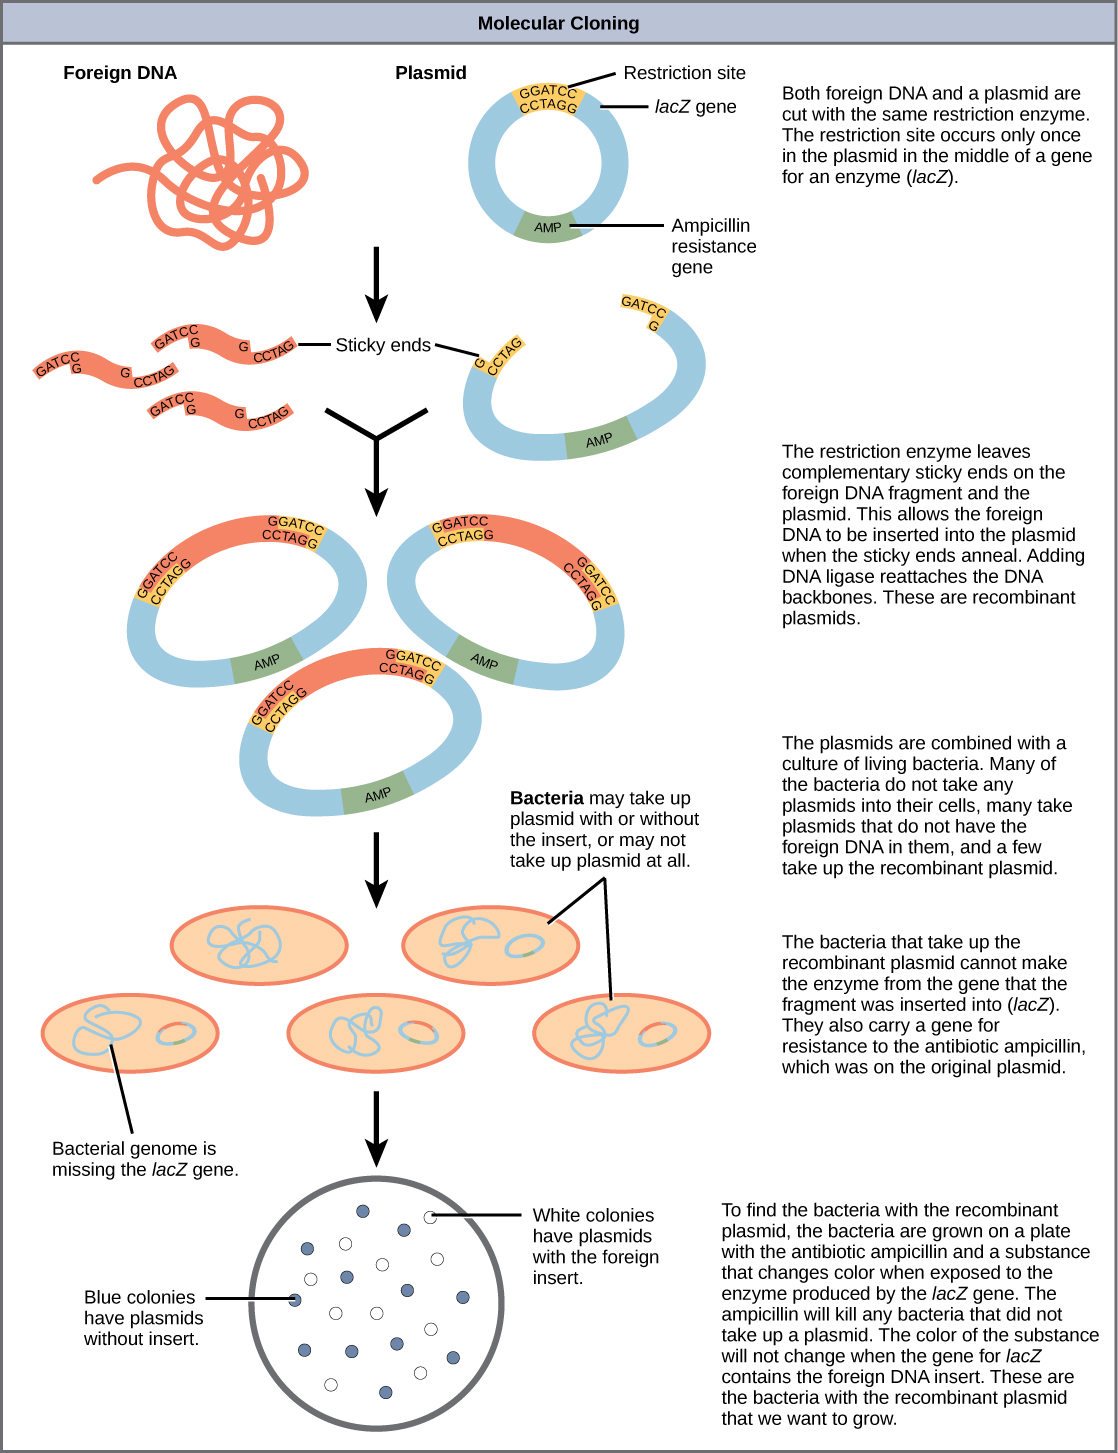 worksheet Restriction Enzyme Worksheet 10 1 cloning and genetic engineering concepts of biology 1st an illustration showing the steps in creating recombinant dna plasmids inserting them into bacteria